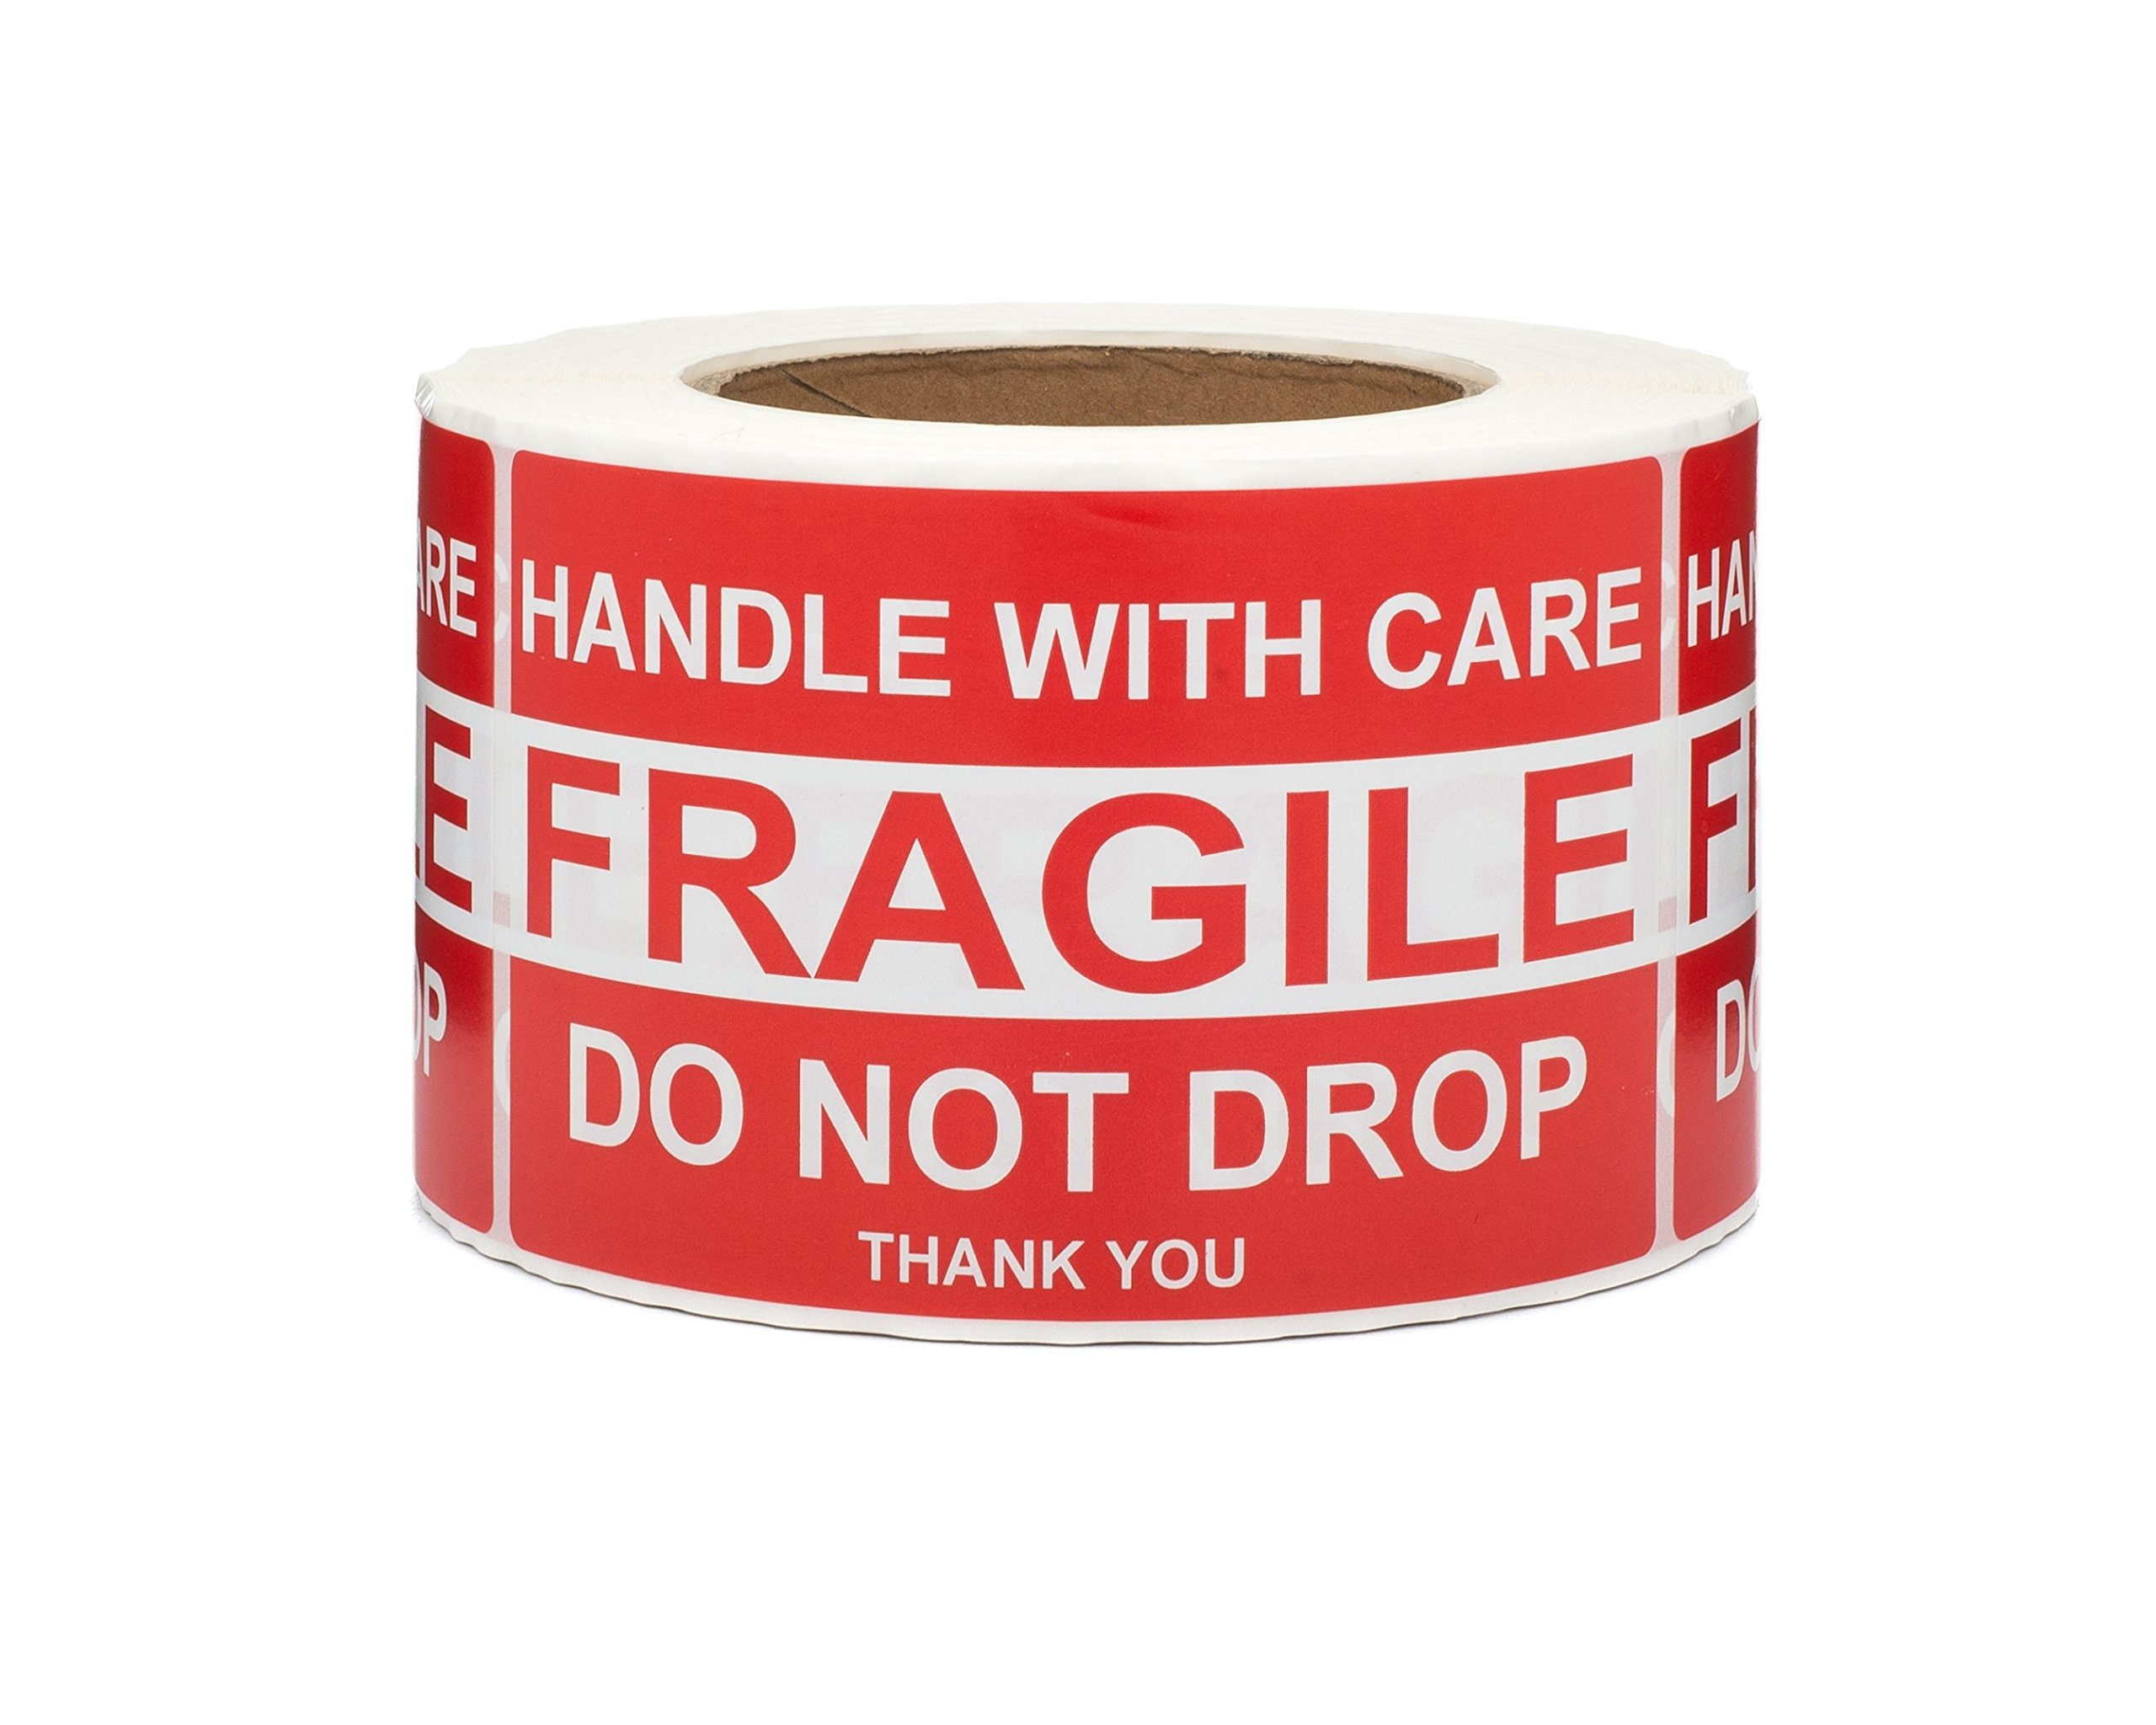 Saurus 500 Labels Per Roll, 3'' X 5'', Fragile Stickers, Do Not Drop Labels, Handle with Care Shipping Labels, 1 Roll